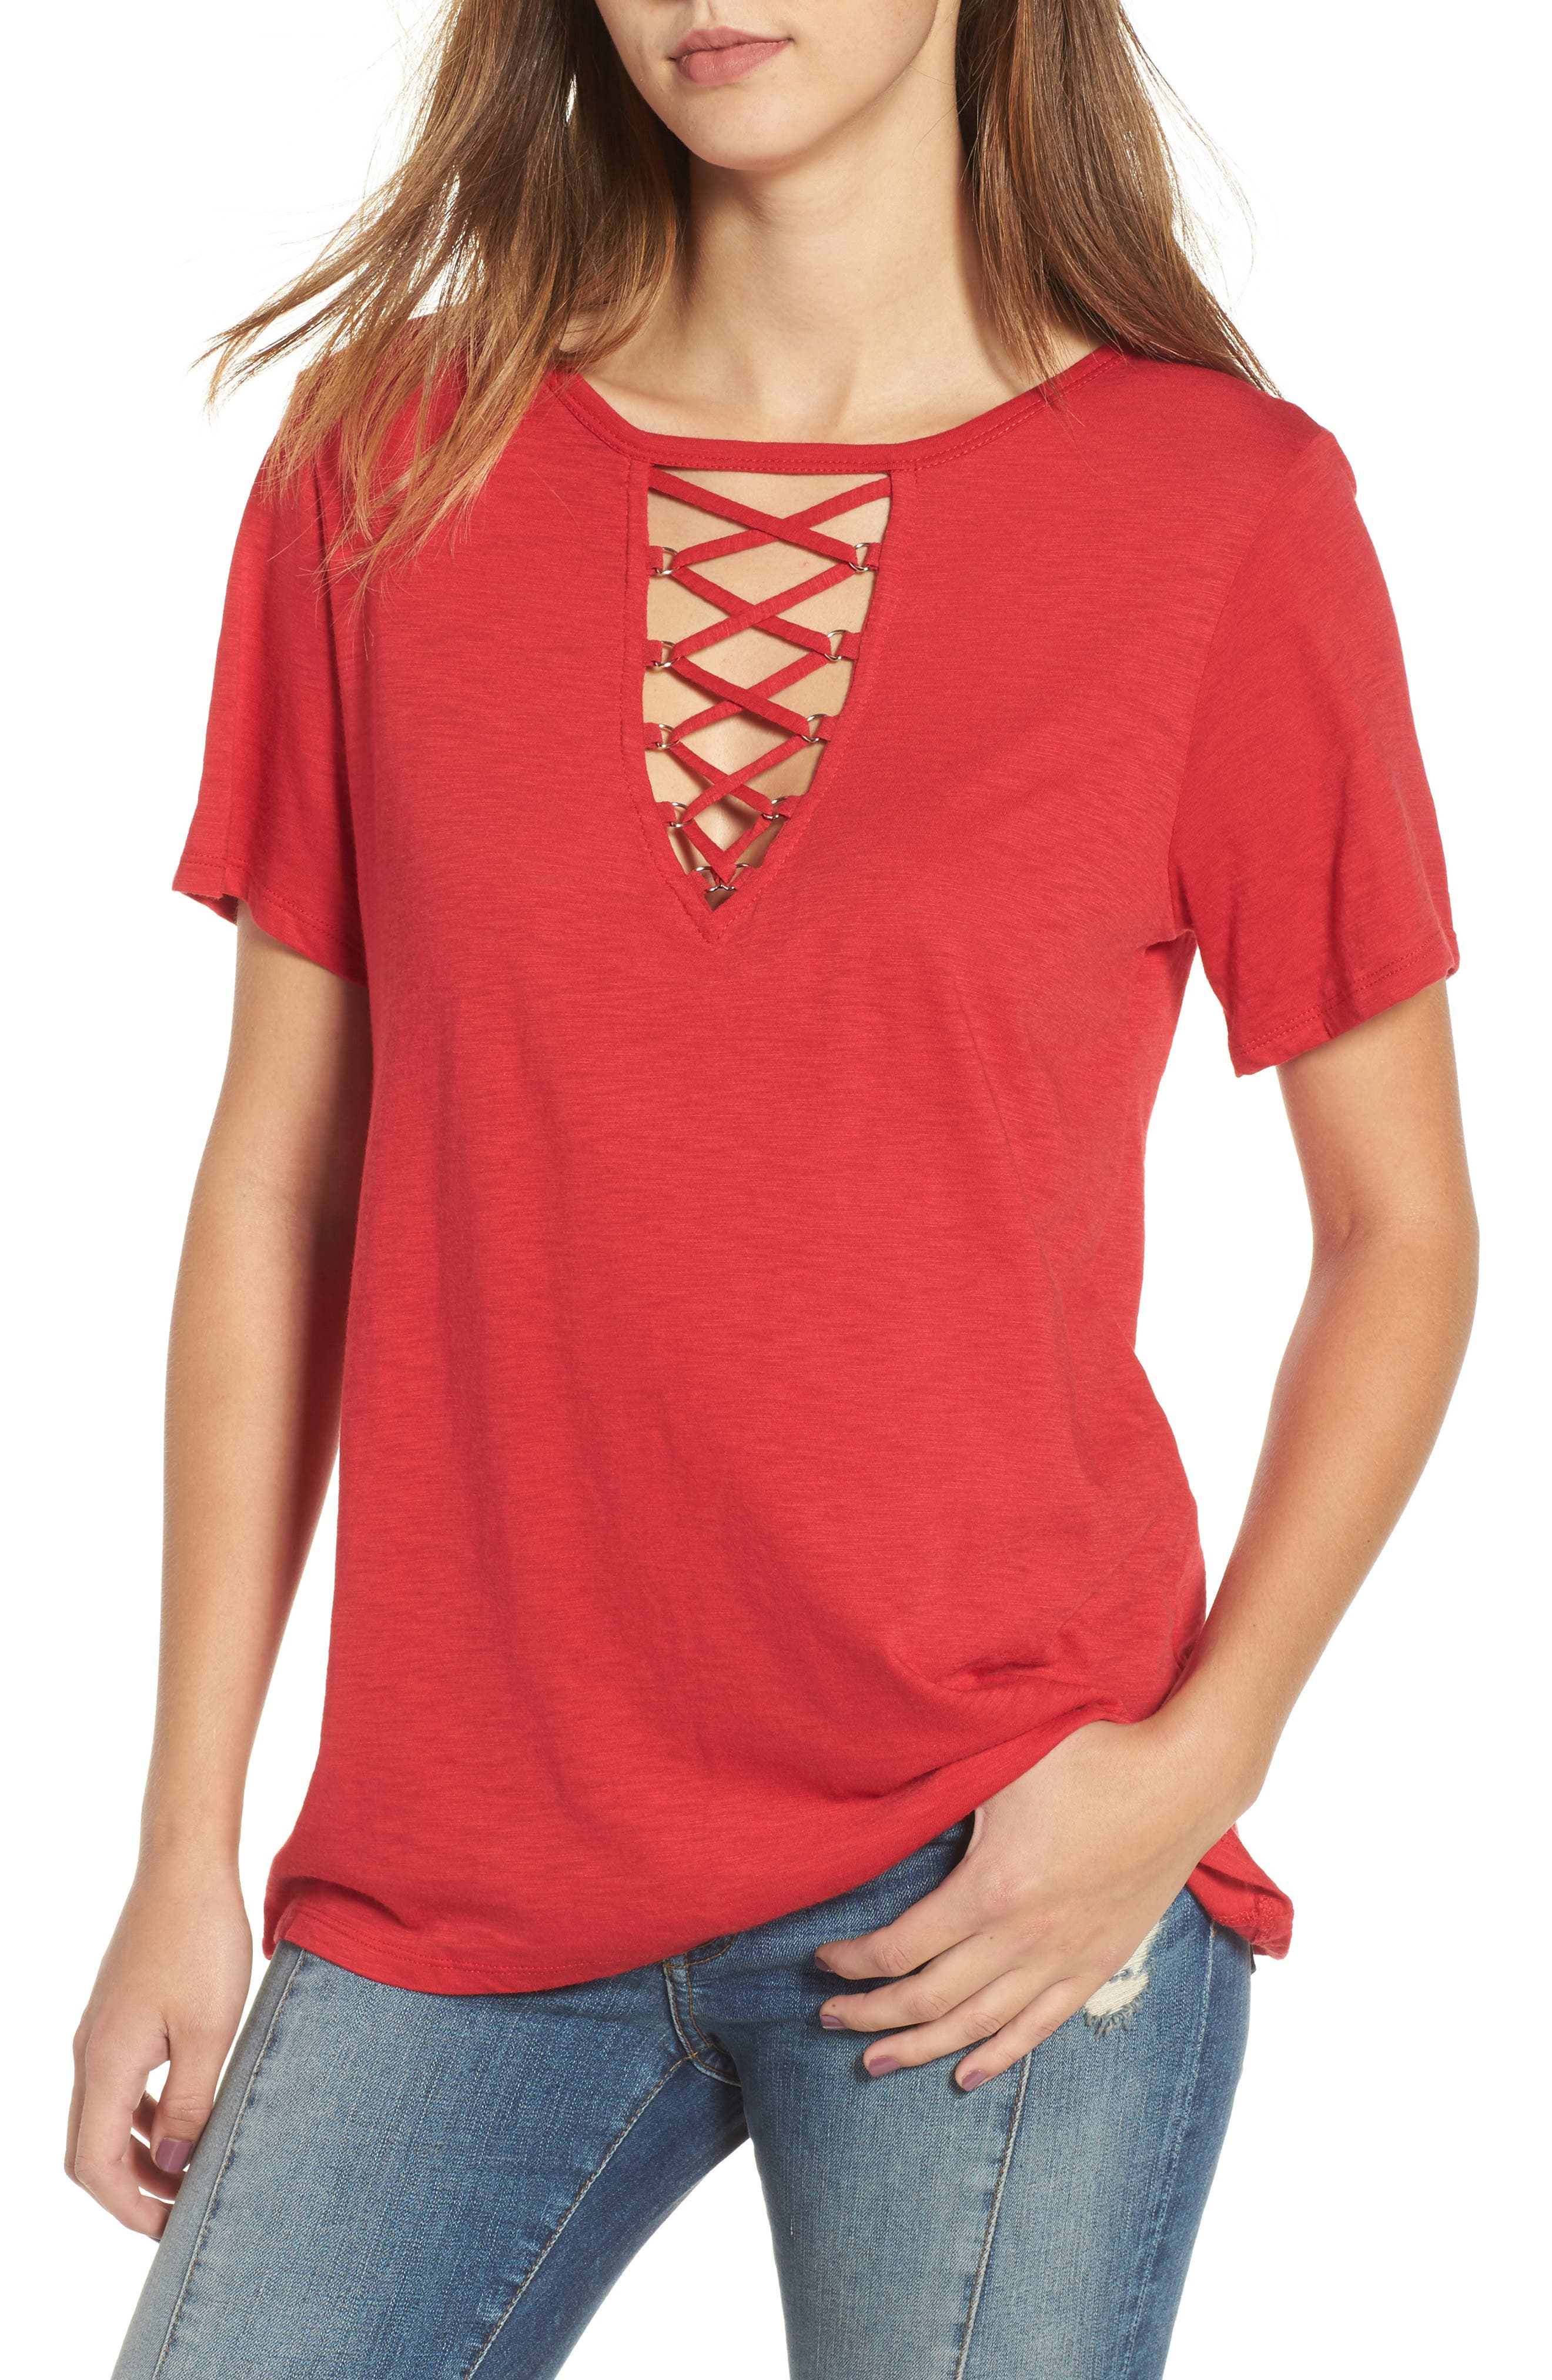 Alternate Image 1 Selected - Socialite Grommet Lace-Up Tee